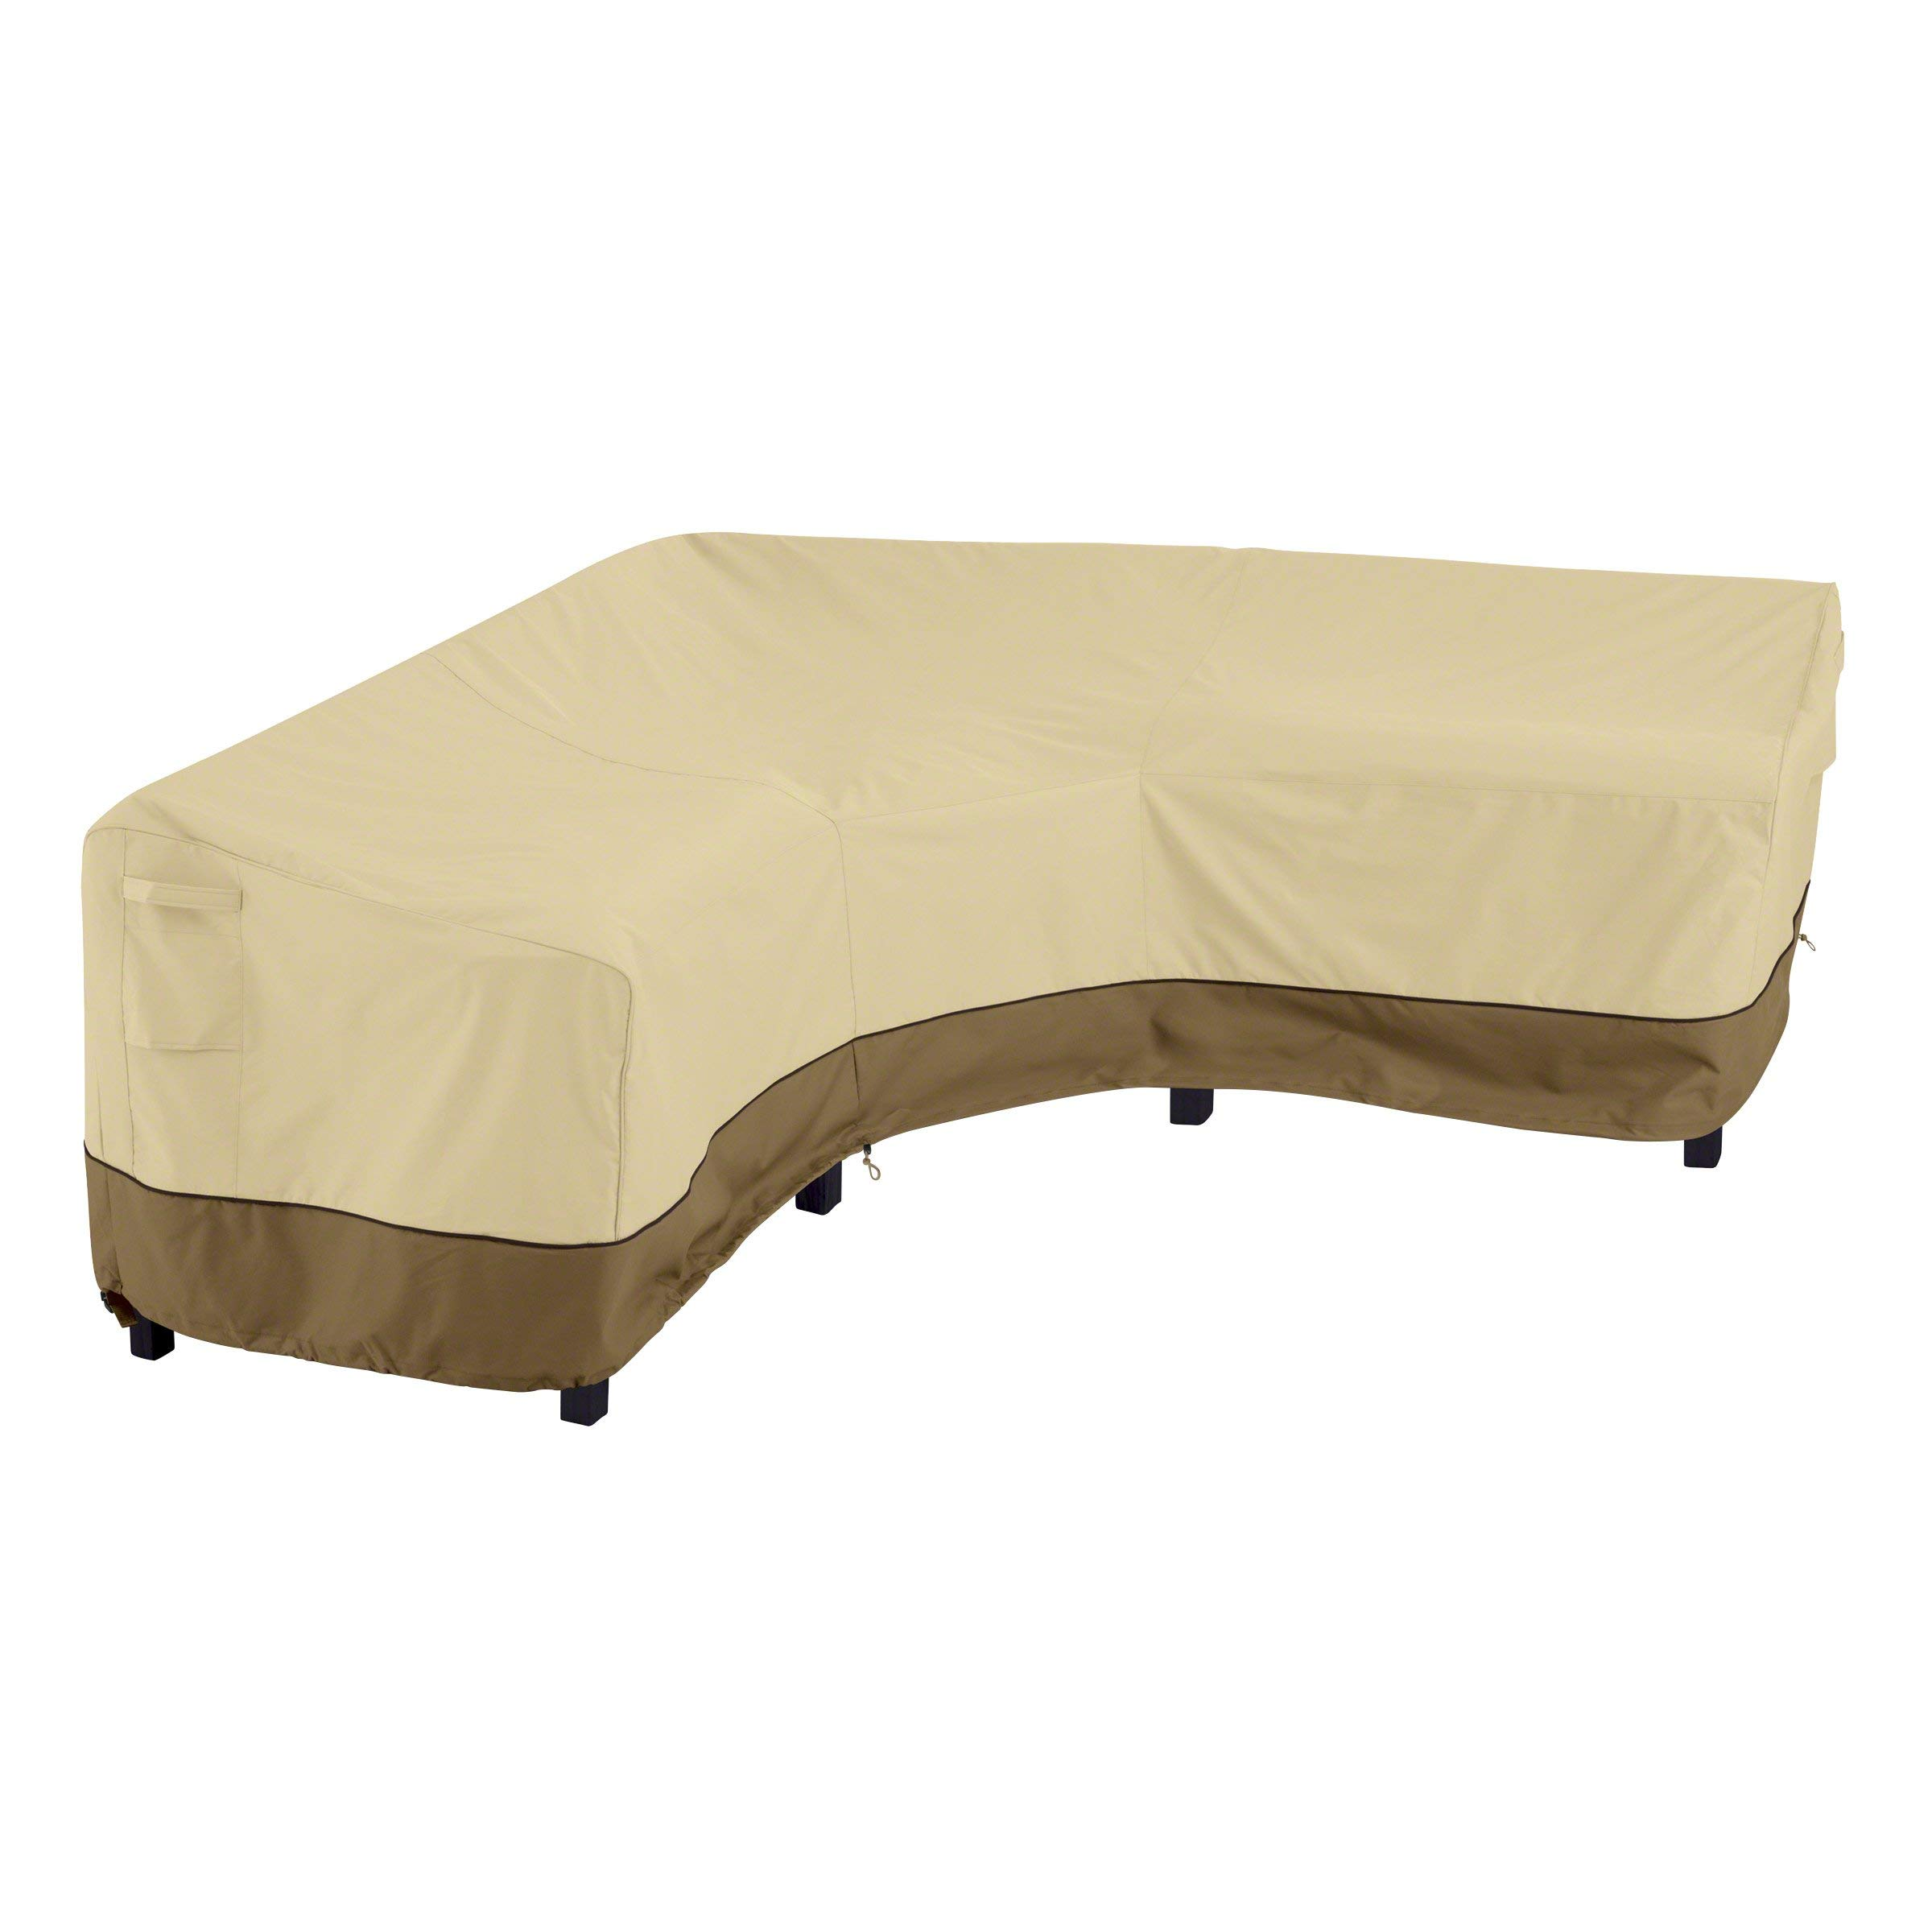 Classic Accessories Veranda V-Shaped Sectional Sofa Cover, Large (Renewed) by Classic Accessories